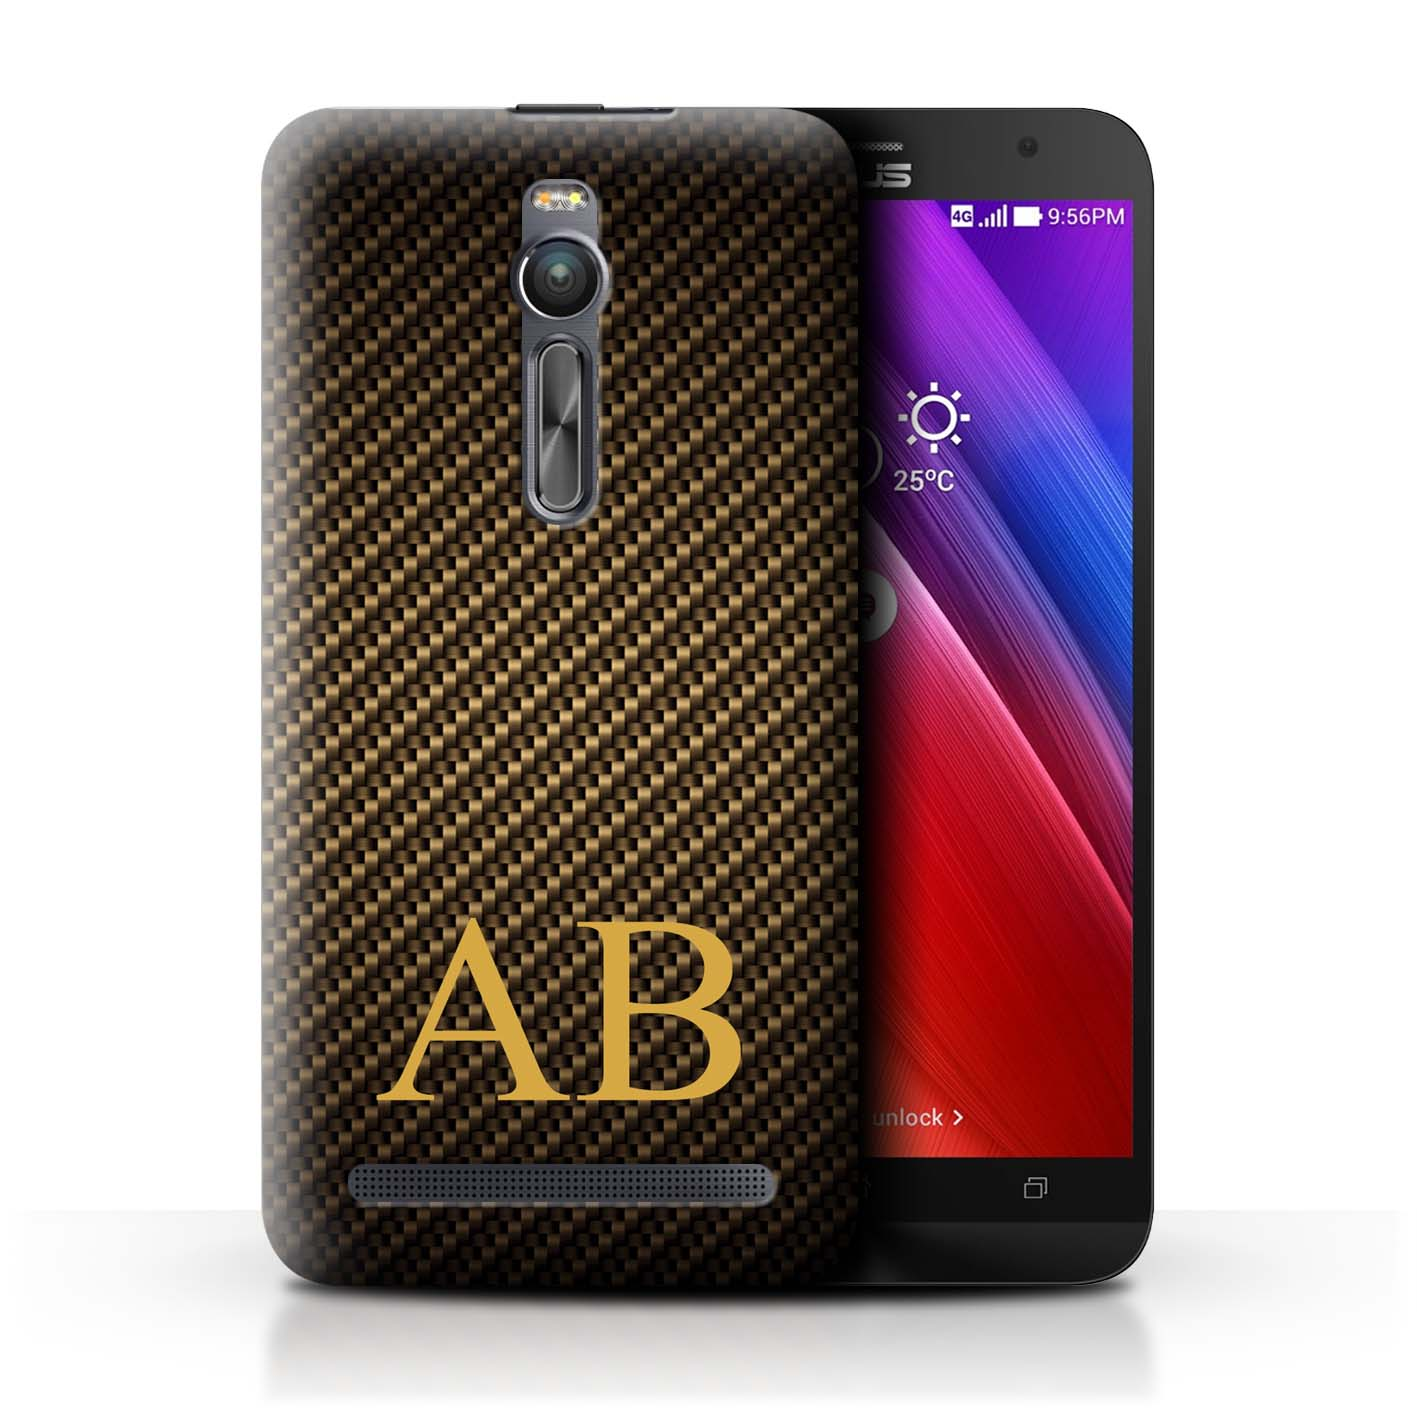 Personalised-Carbon-Fibre-Effect-Phone-Case-Cover-for-ASUS-Smartphone-Initial